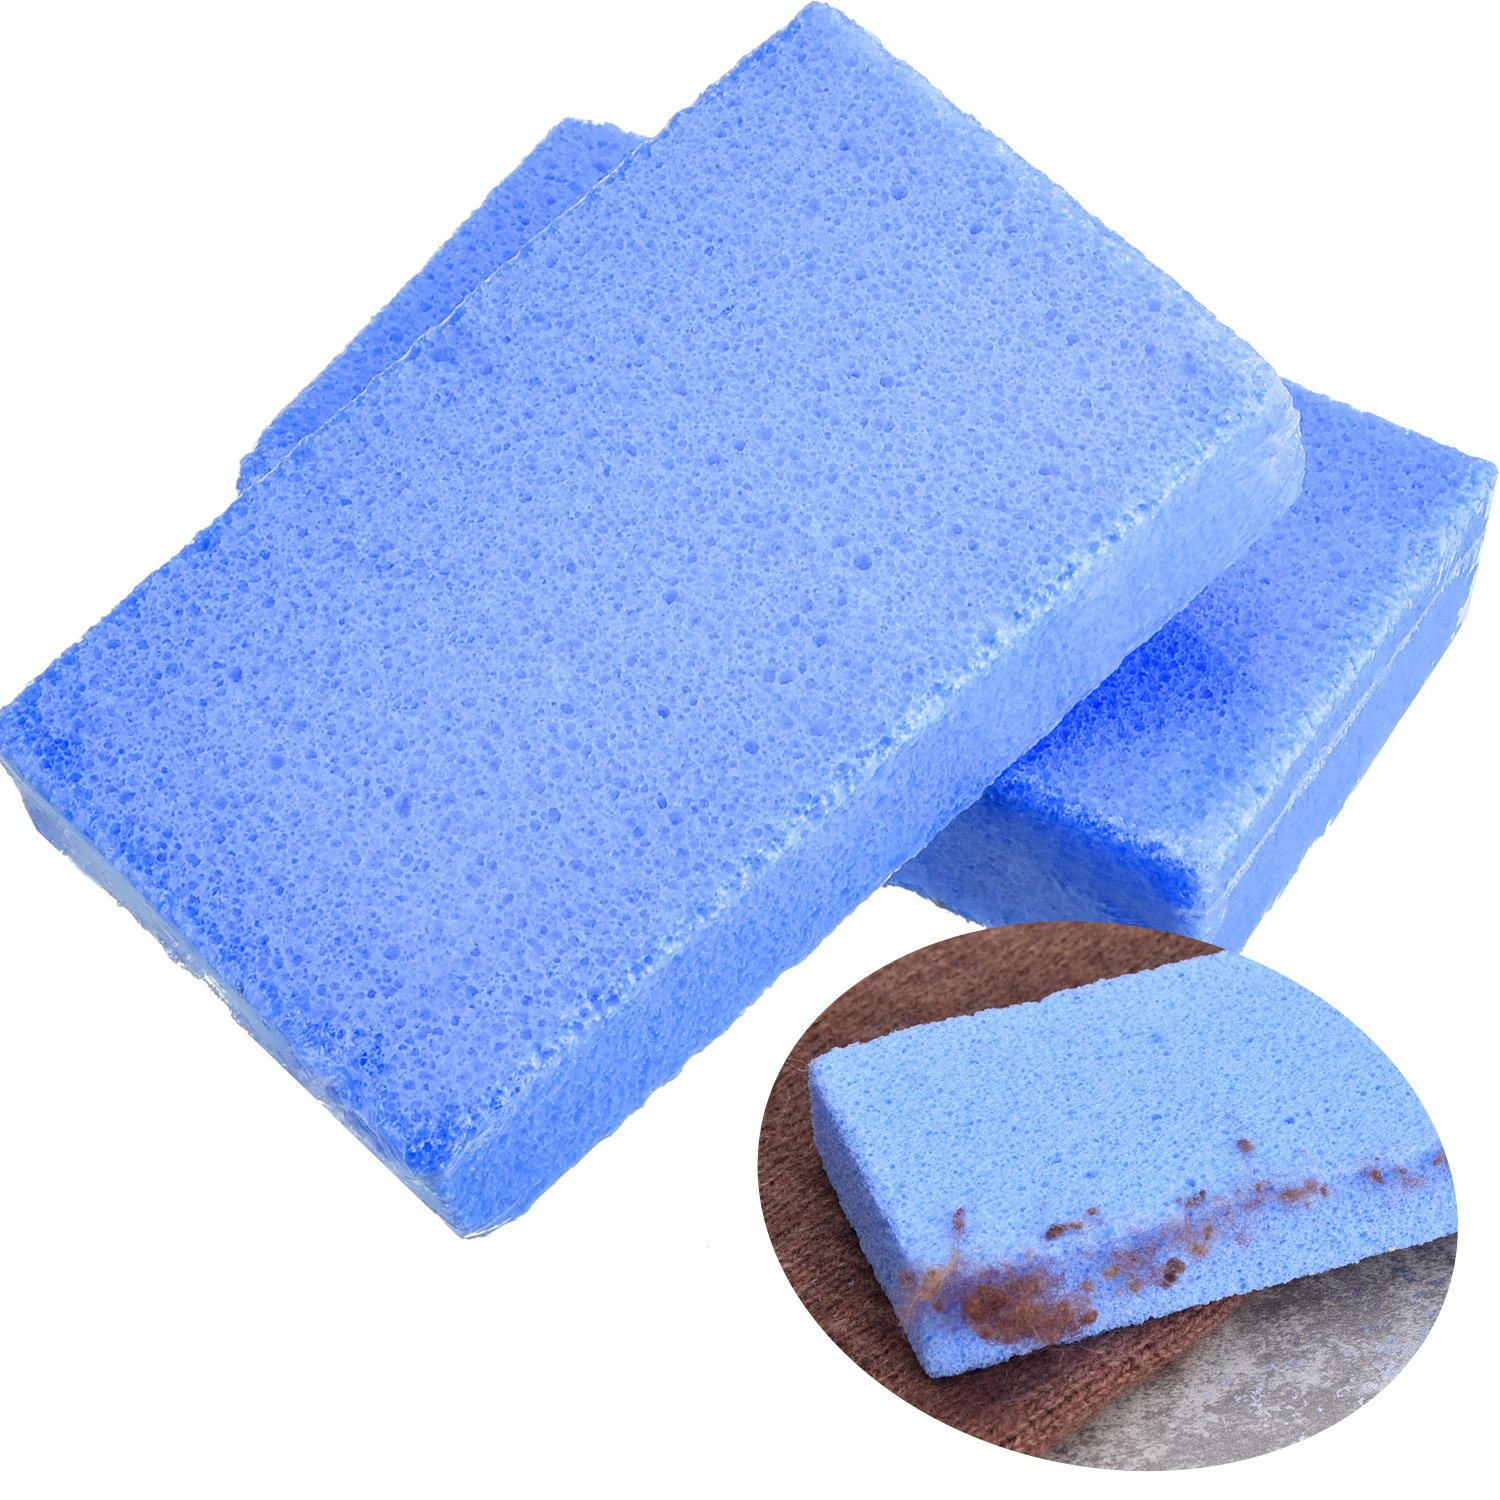 BBTO 2 Pack Sweater Stone Clothing Care Sweaters Lint Pilling Remover for Sweaters, Household Cleaning, Blue